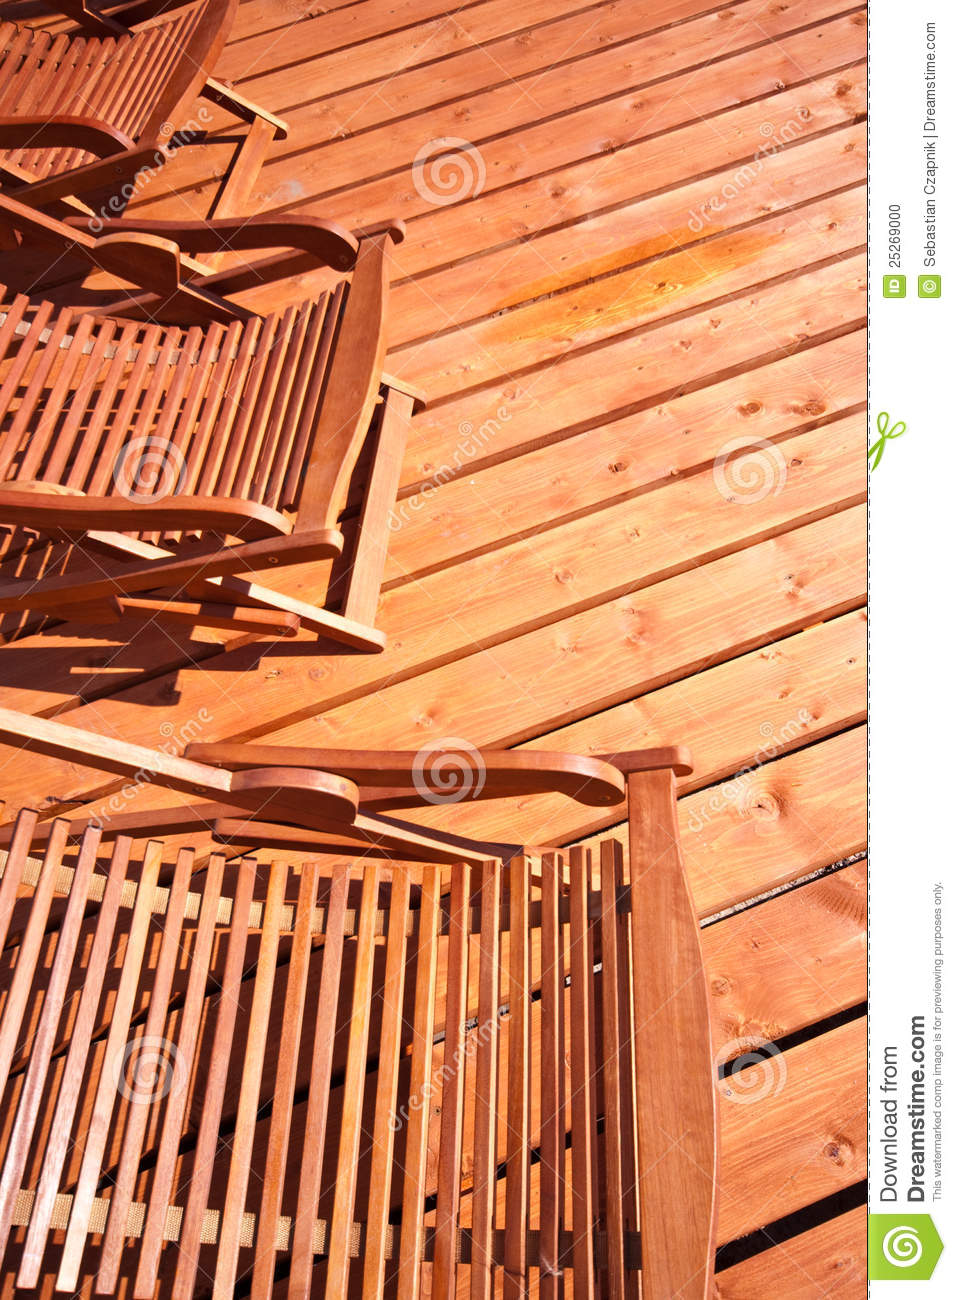 Permalink to plans for wooden deck chairs